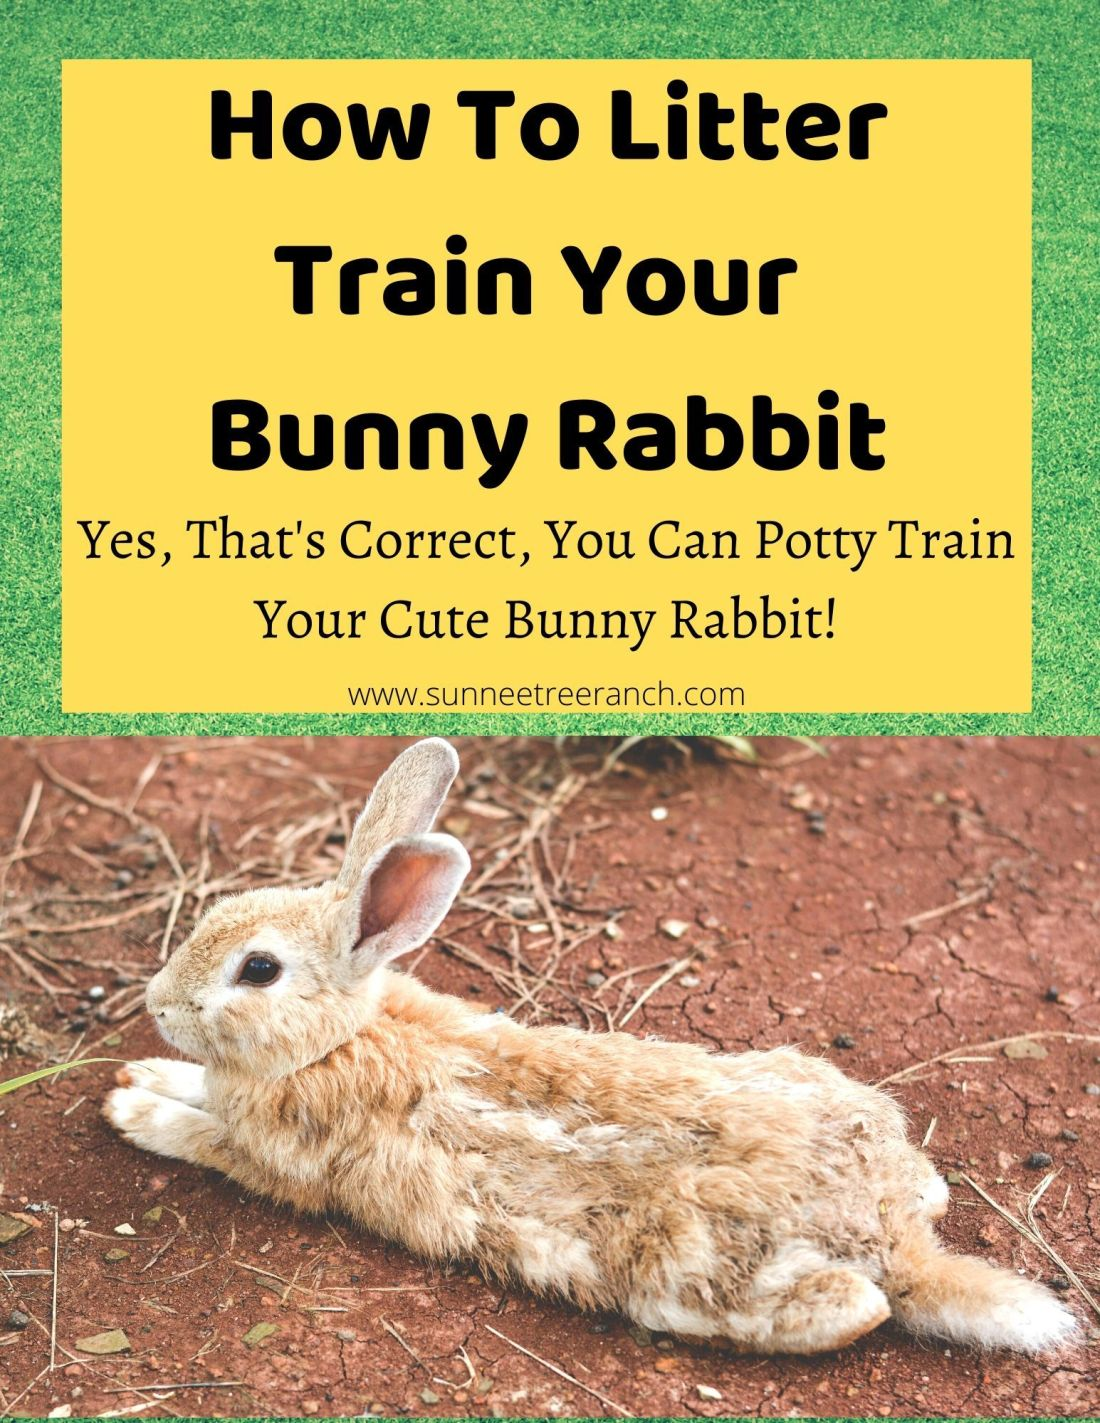 How to potty train a bunny rabbit in 2020 litter